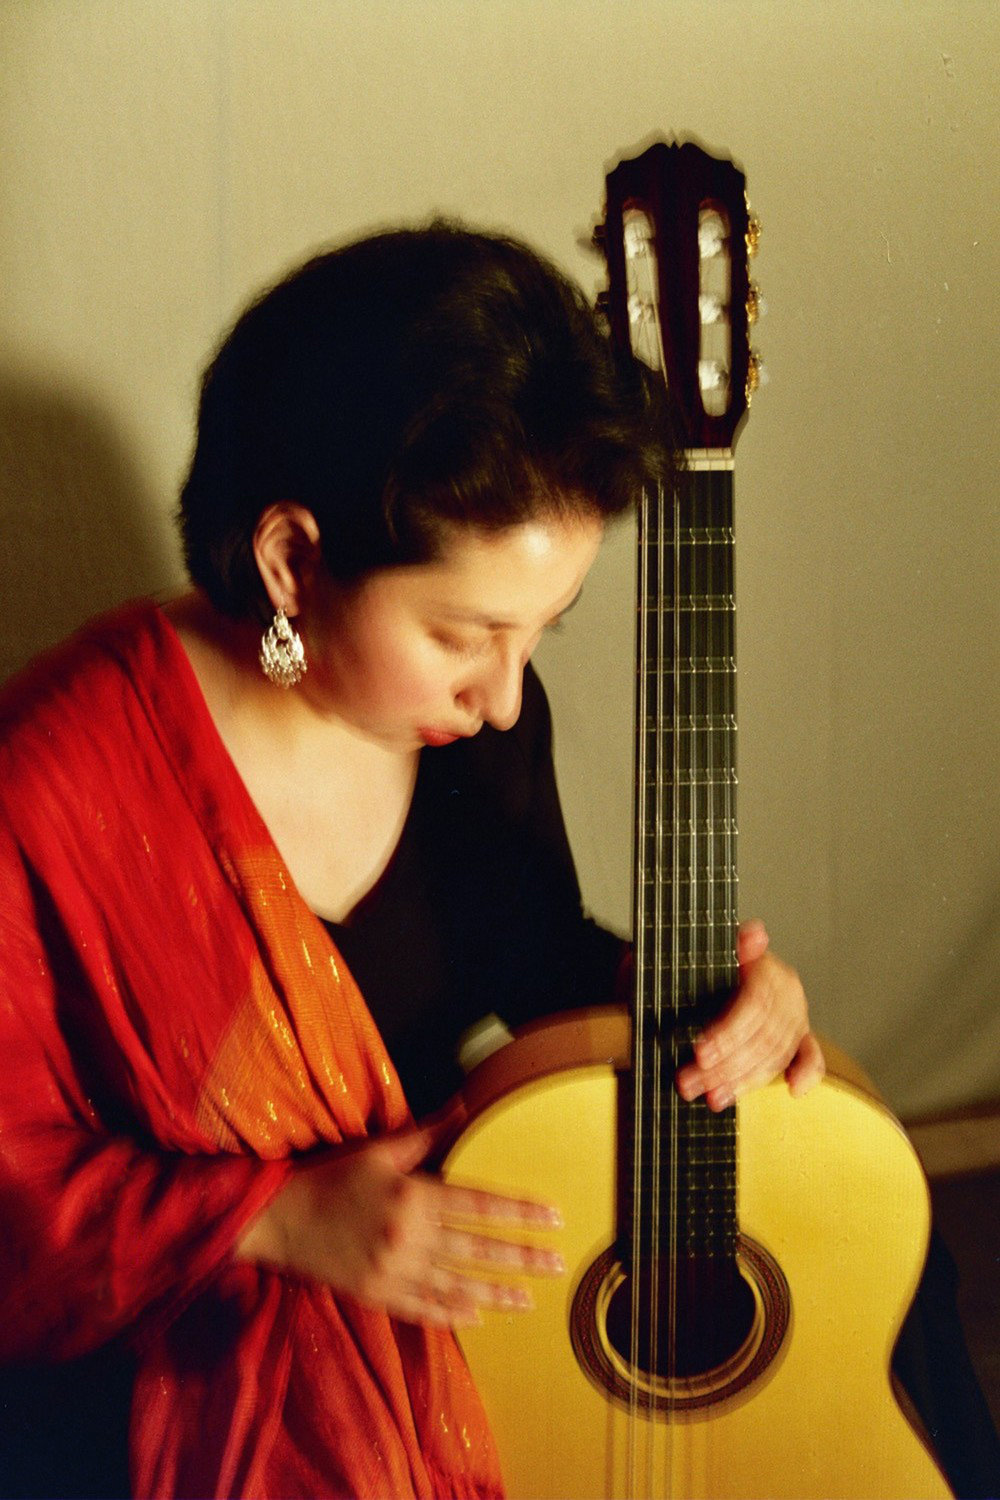 duo_tenebroso_kristen_waligora_classical_guitar_looking_down.jpg